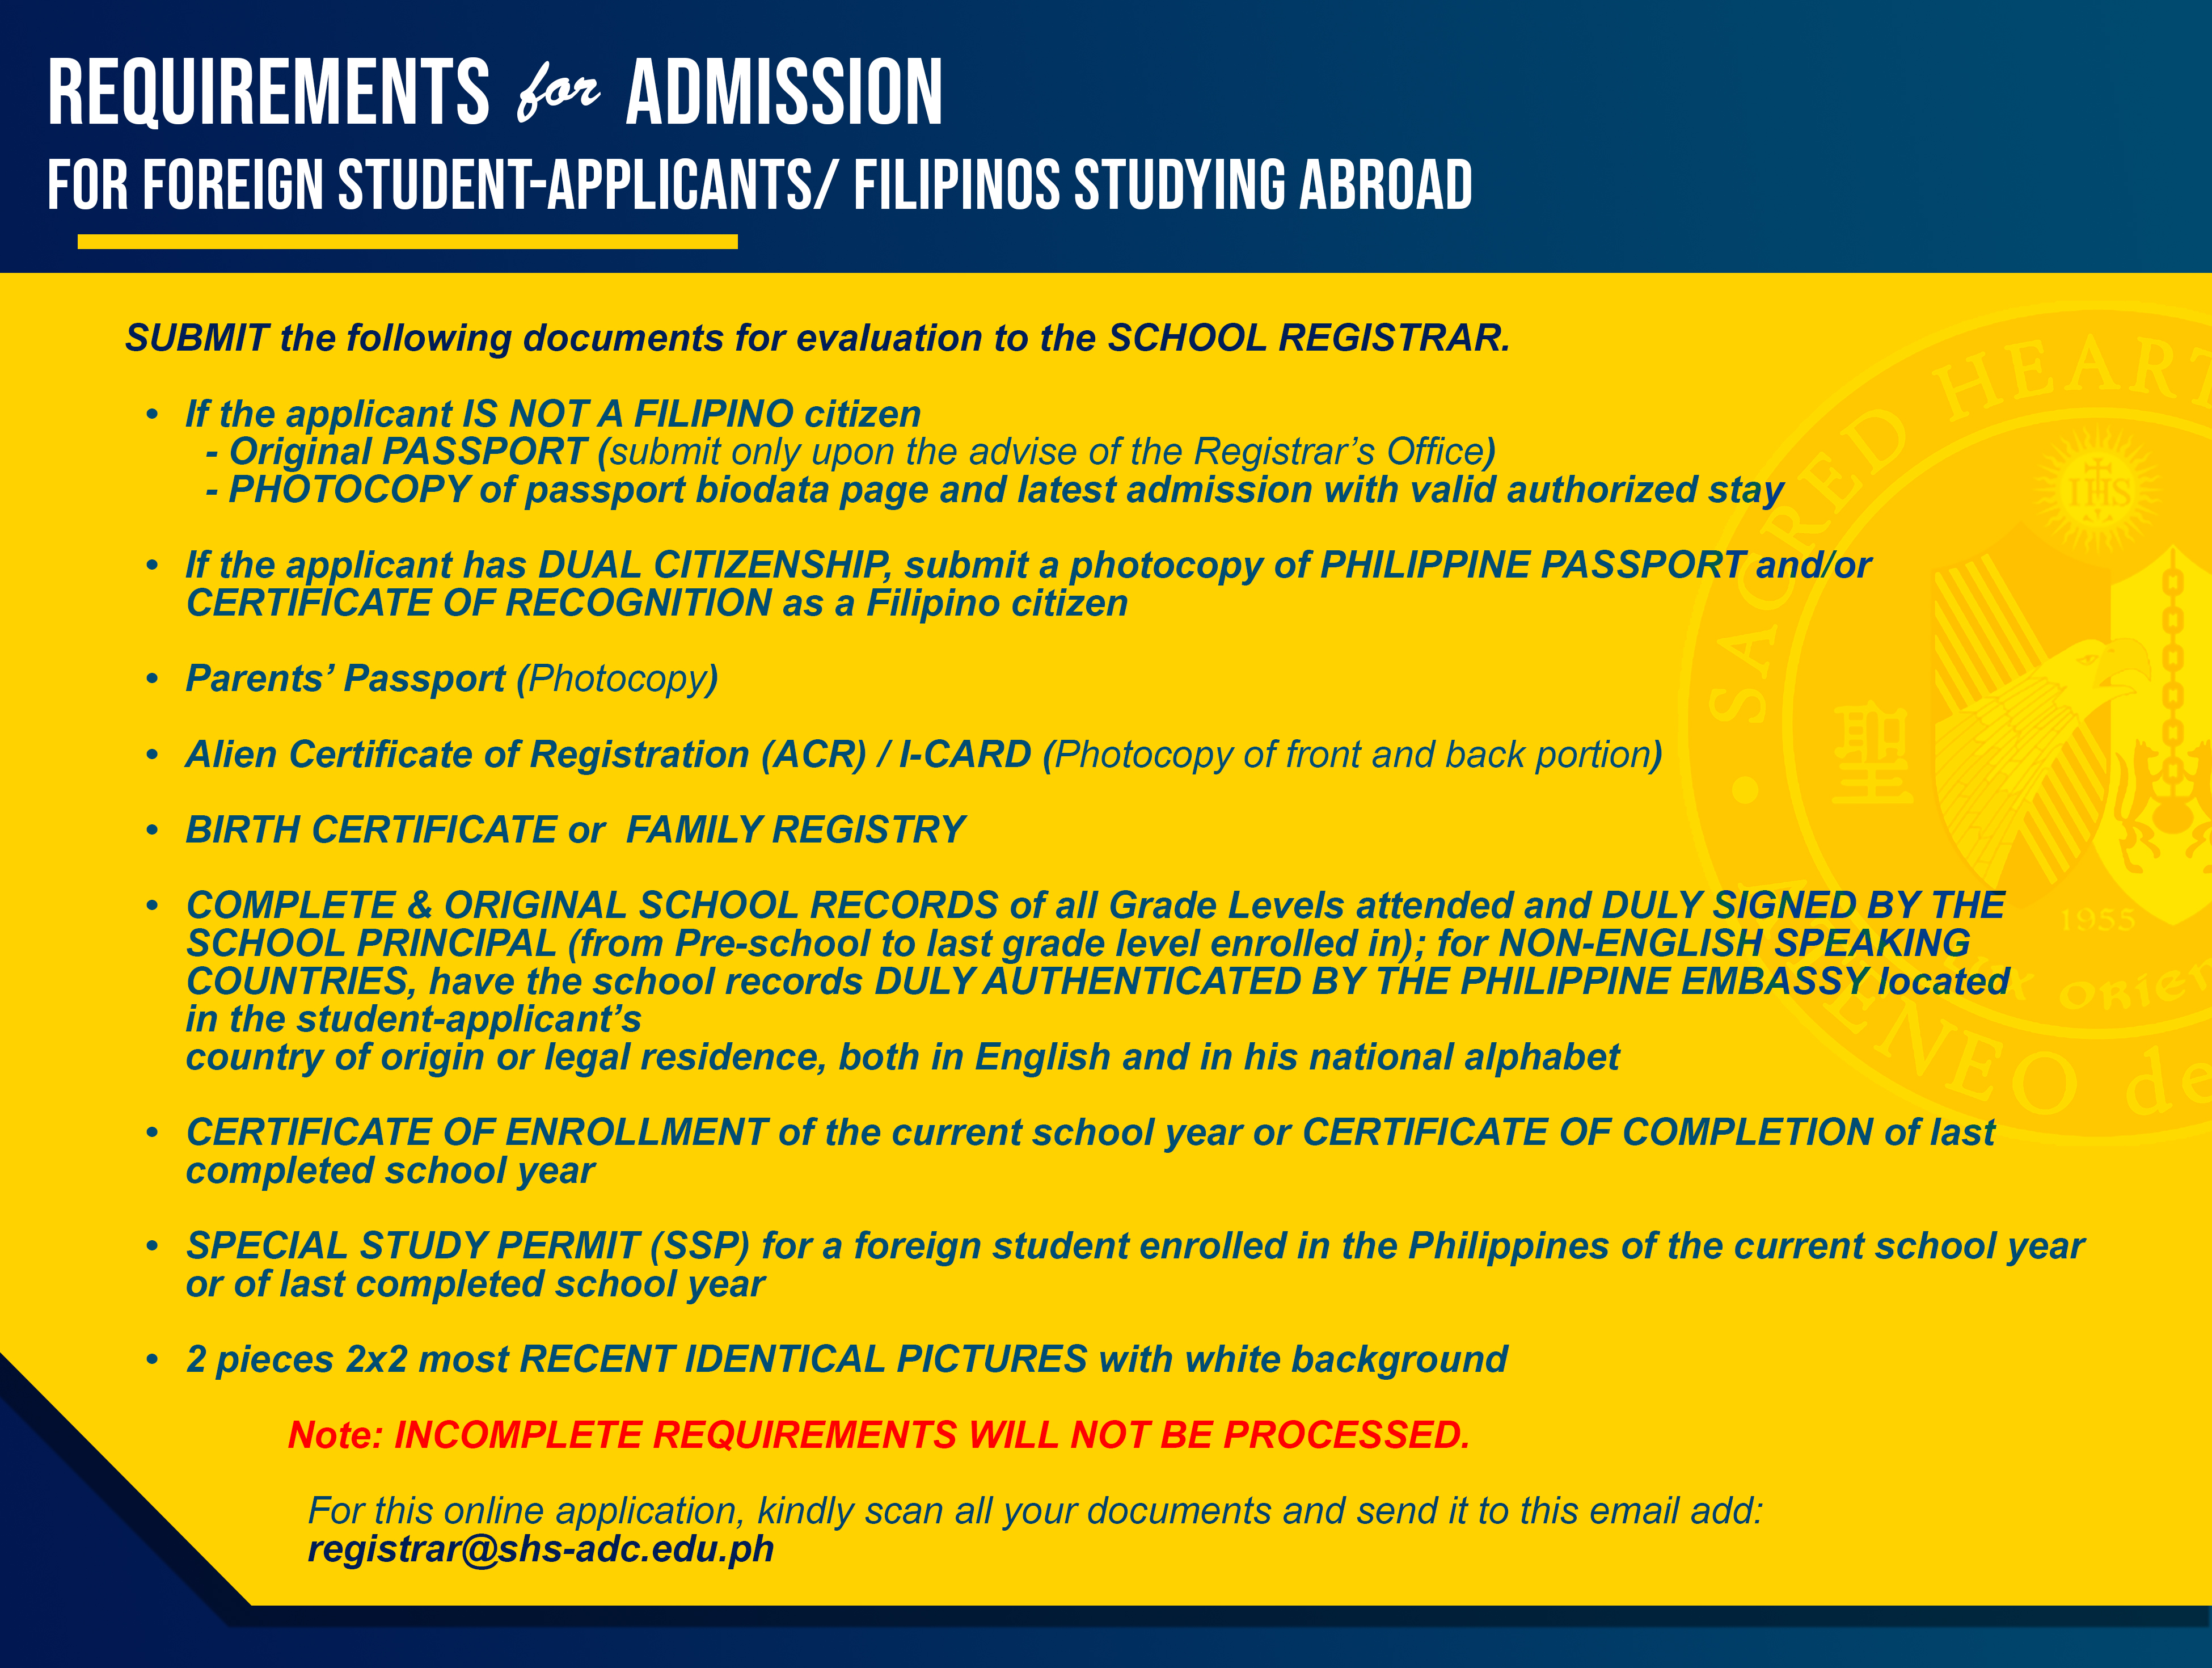 Requirements for admission FOreign applicants